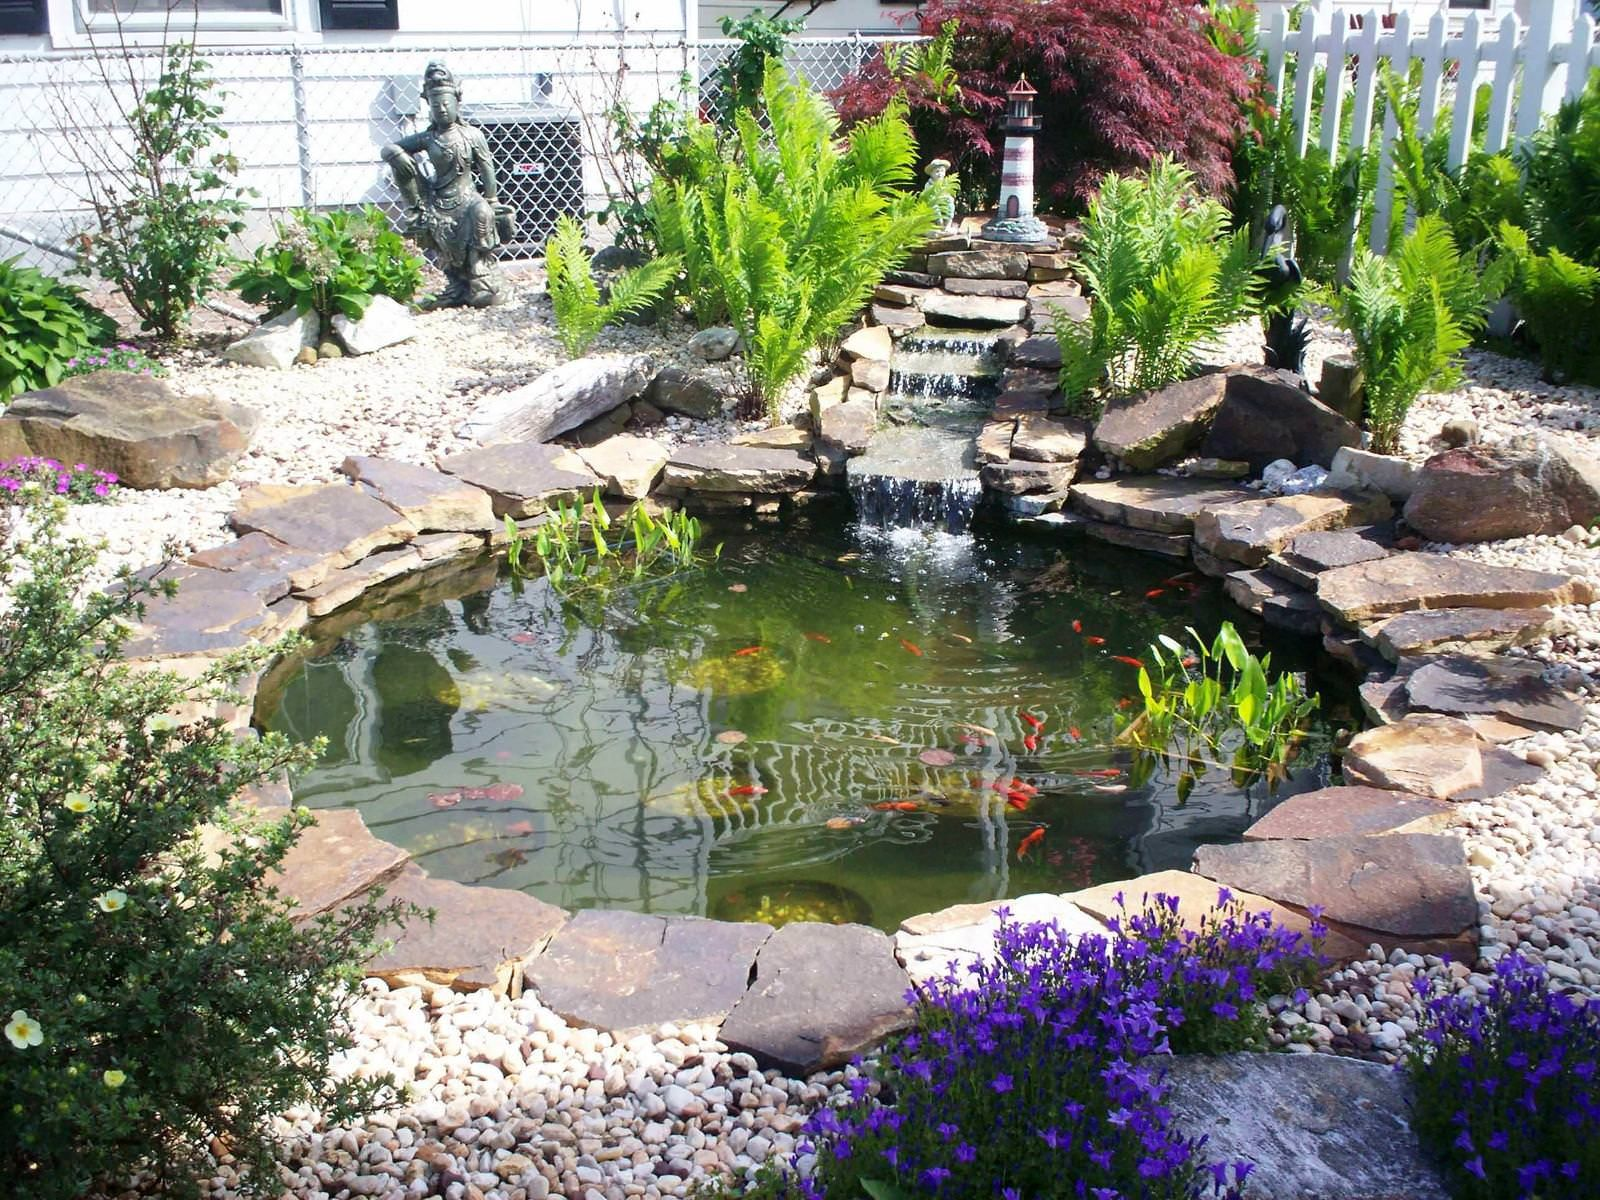 Backyard Pond Fish Easy Backyard Pond Kits Design And Ideas Small Garden Pond Ideas Uk In 2020 Garden Pond Design Pond Landscaping Ponds Backyard